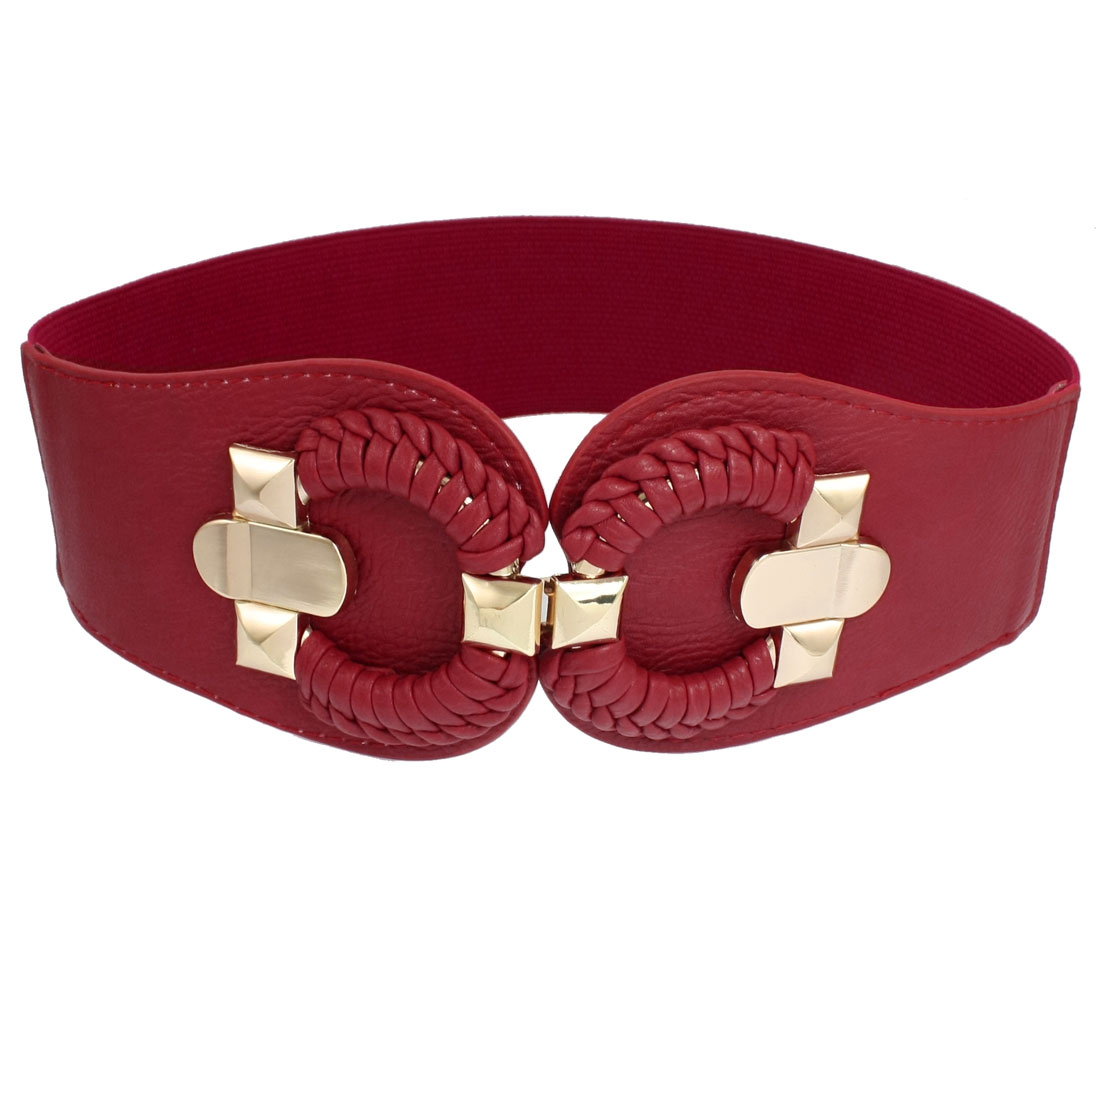 Ladies Round Braided Buckle Textured Faux Leather Elastic Waistband Red